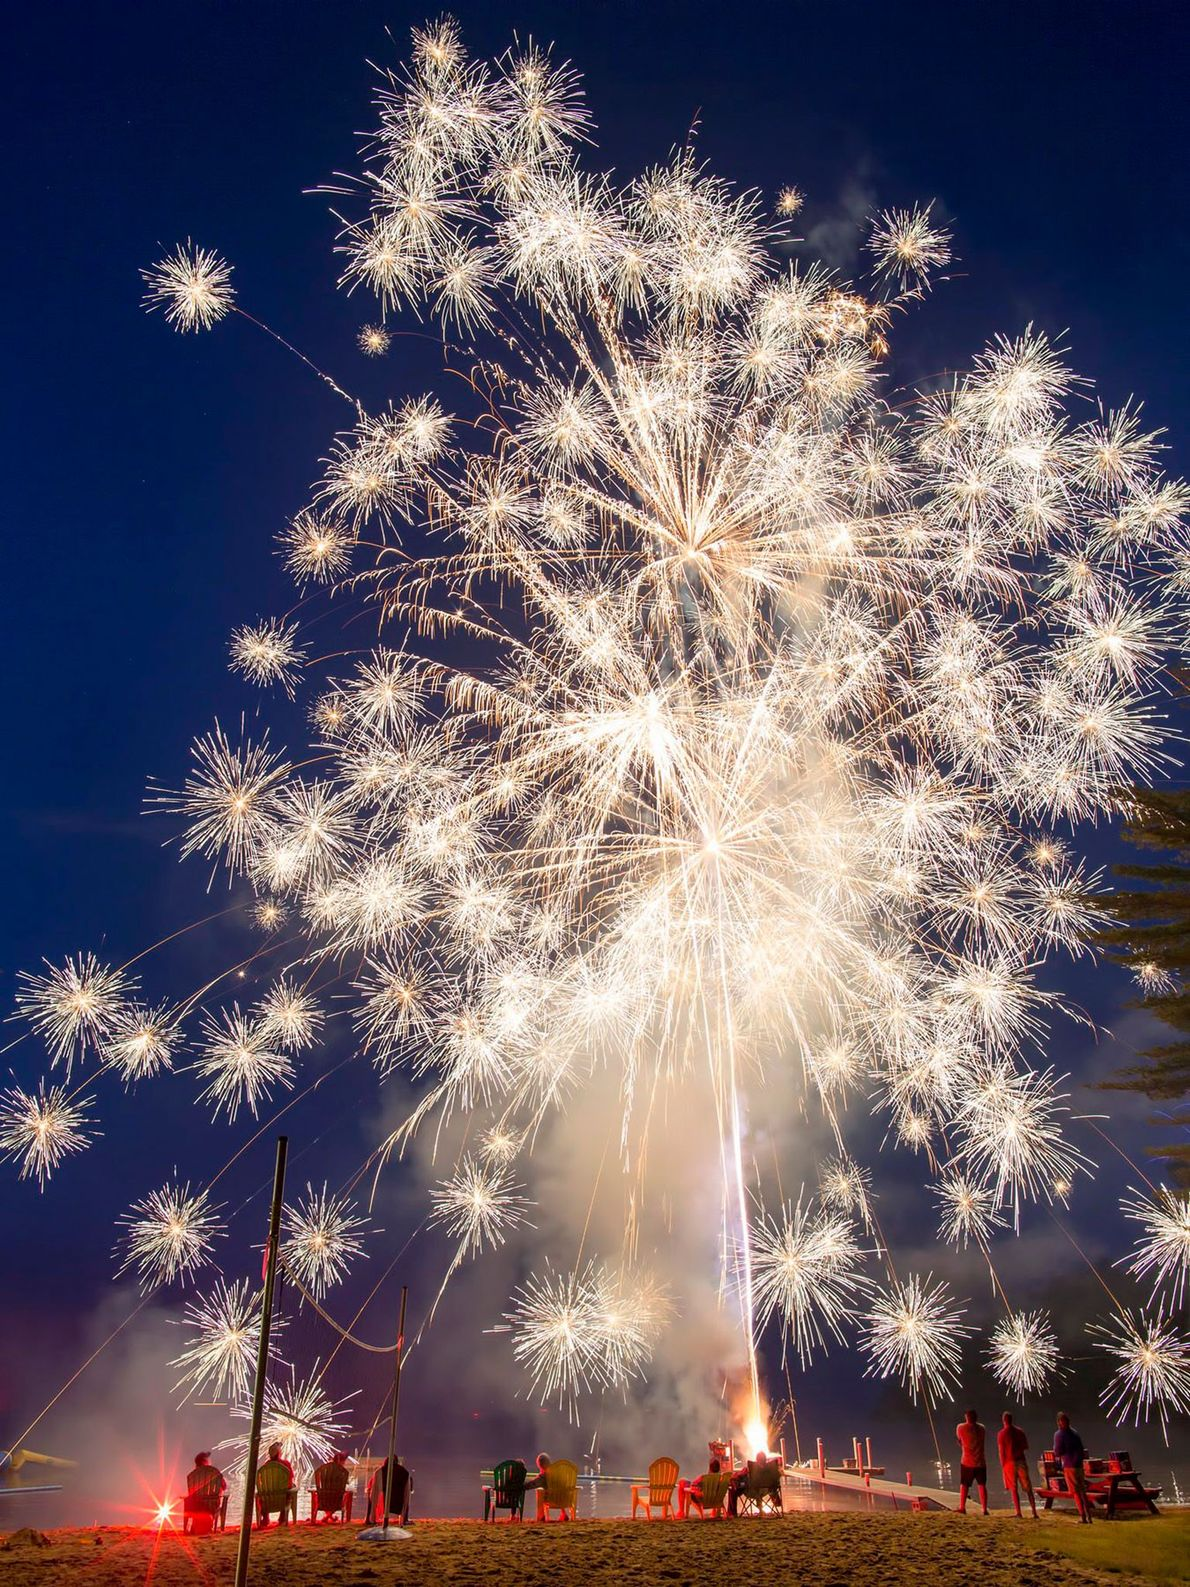 """Rindge, New Hampshire Big-city Fourth of July fireworks are incredible, writes Harasimowicz, but small family displays """"are ..."""